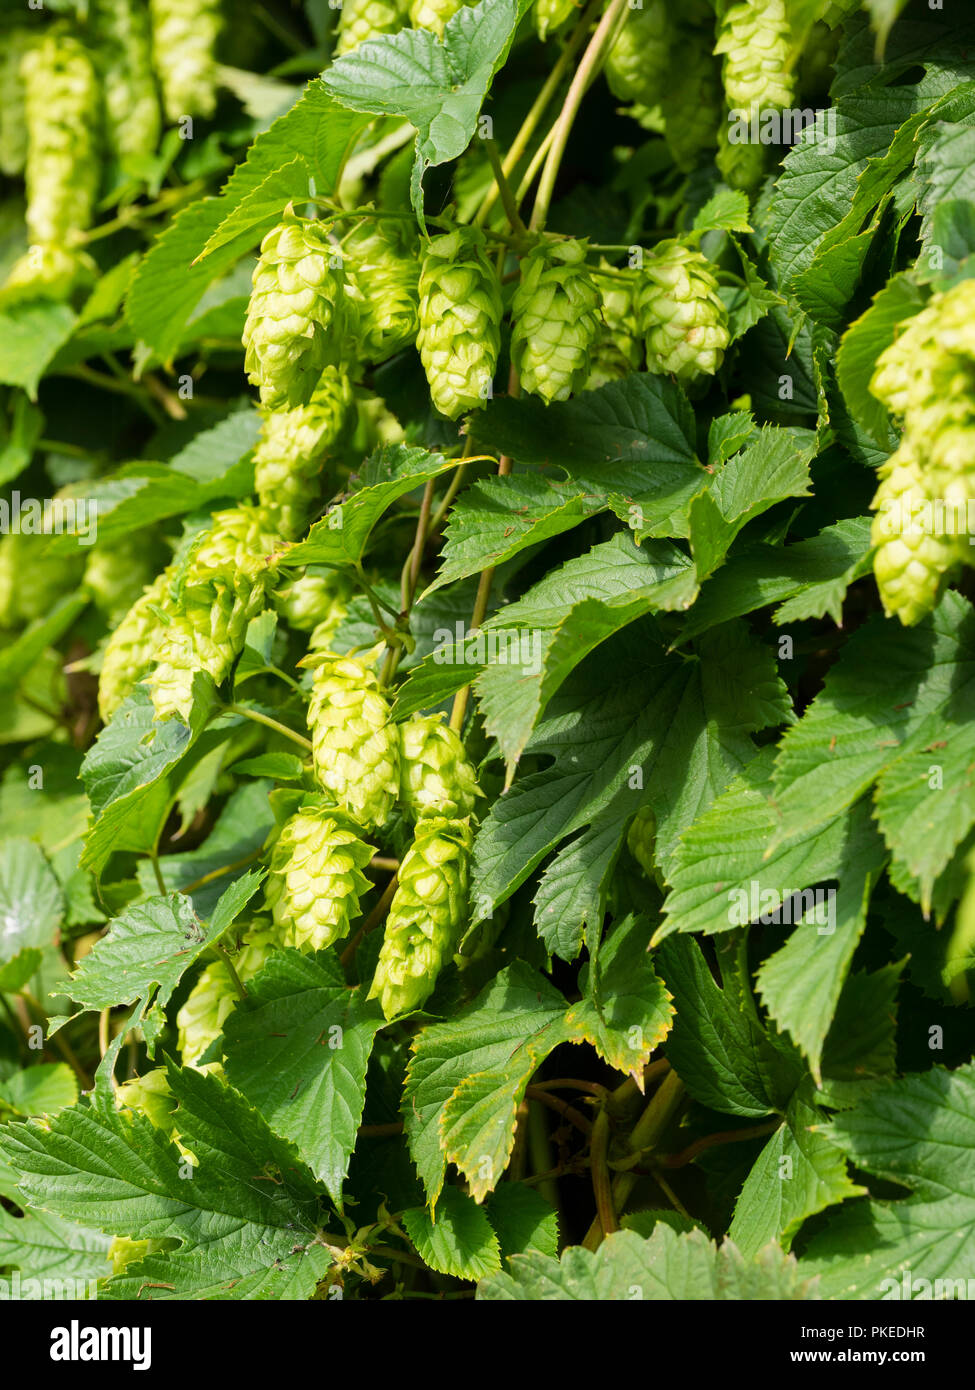 Late summer green flower of the climber Humulus lupulus, hops, used for flavouring for brewing beer - Stock Image